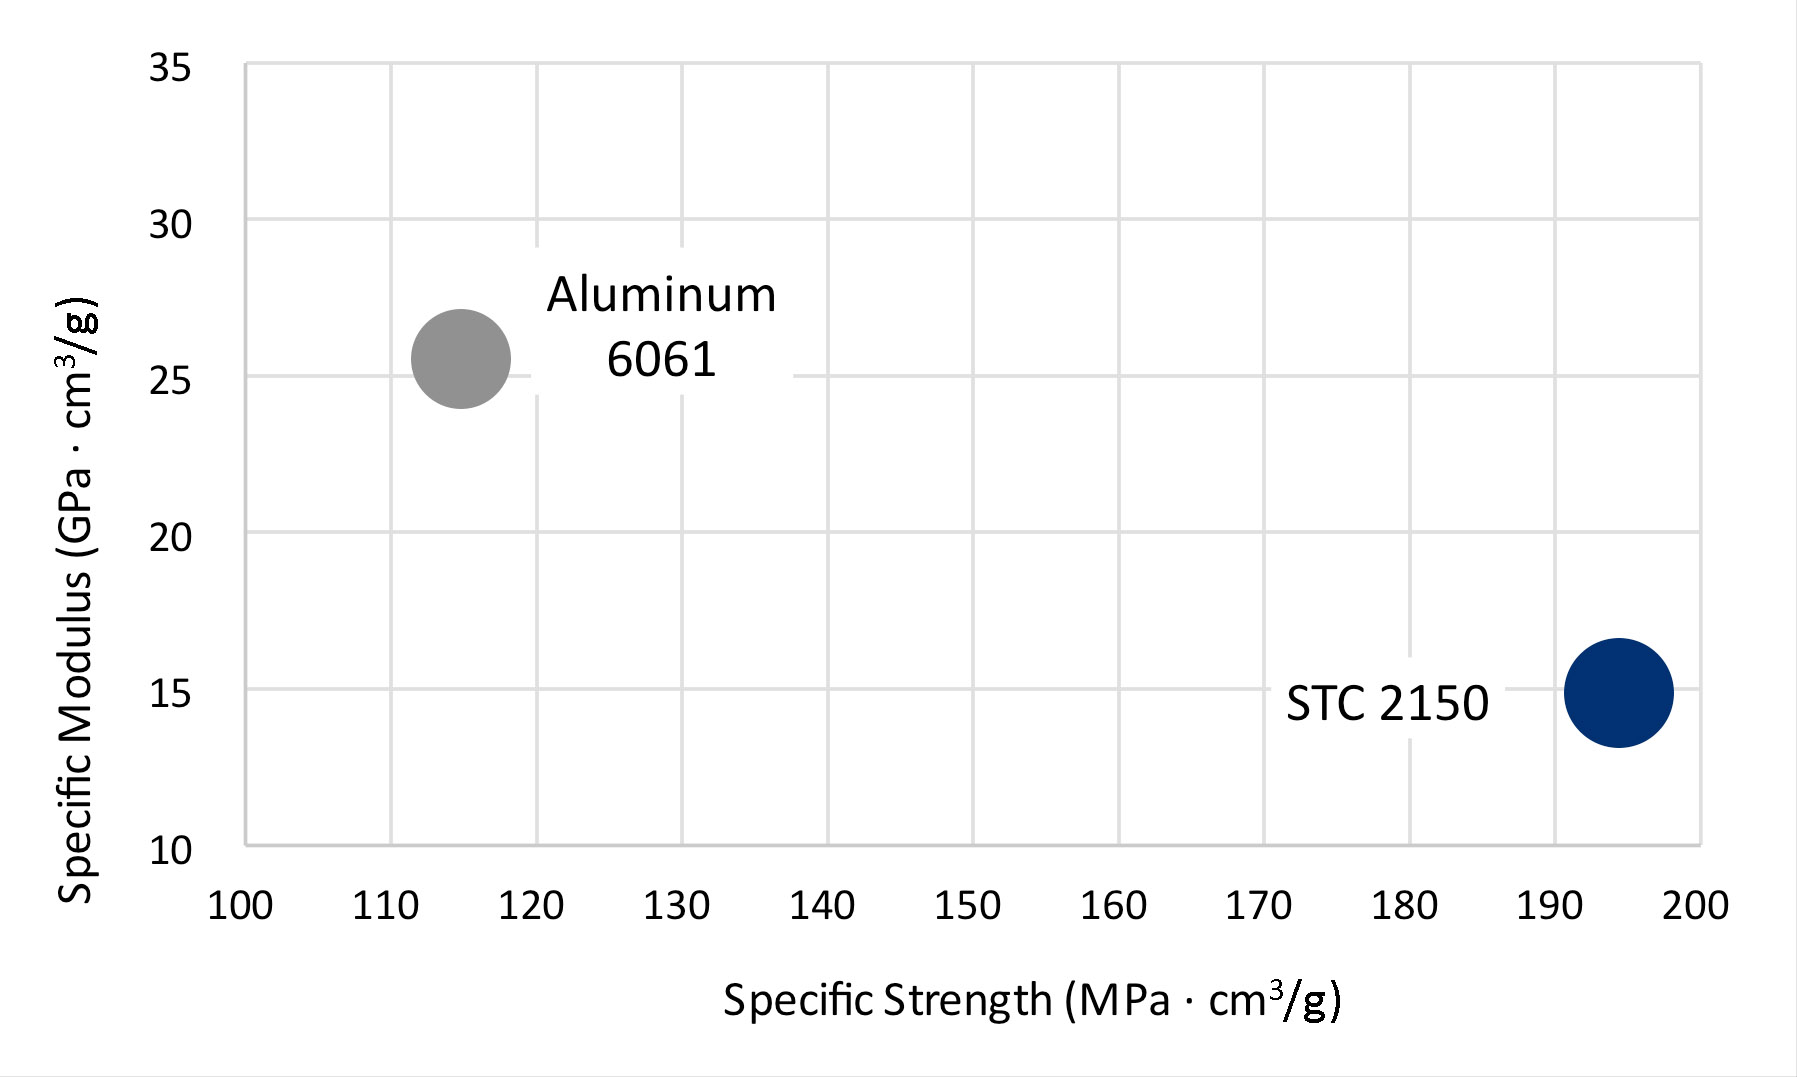 Fortium STC 2150 compared to aluminum